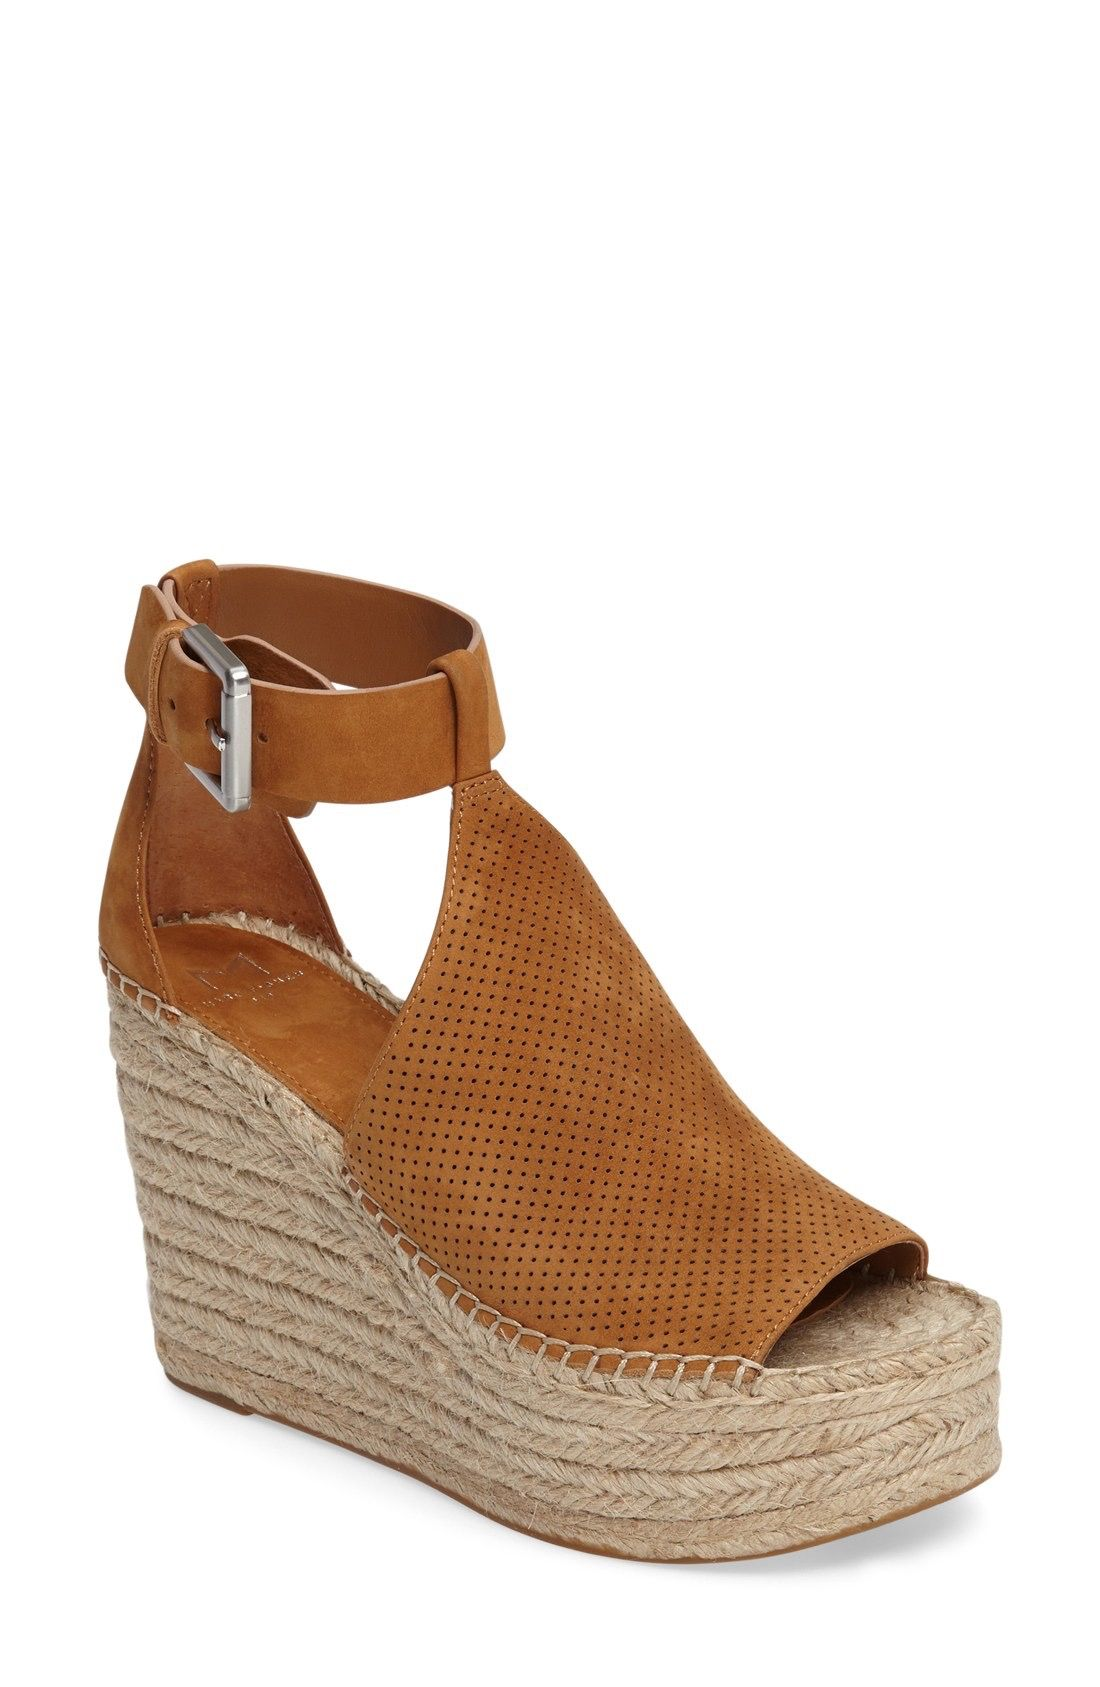 c4740772d1e Marc Fisher LTD Annie Perforated Espadrille Platform Wedge (Women)  available at  Nordstrom